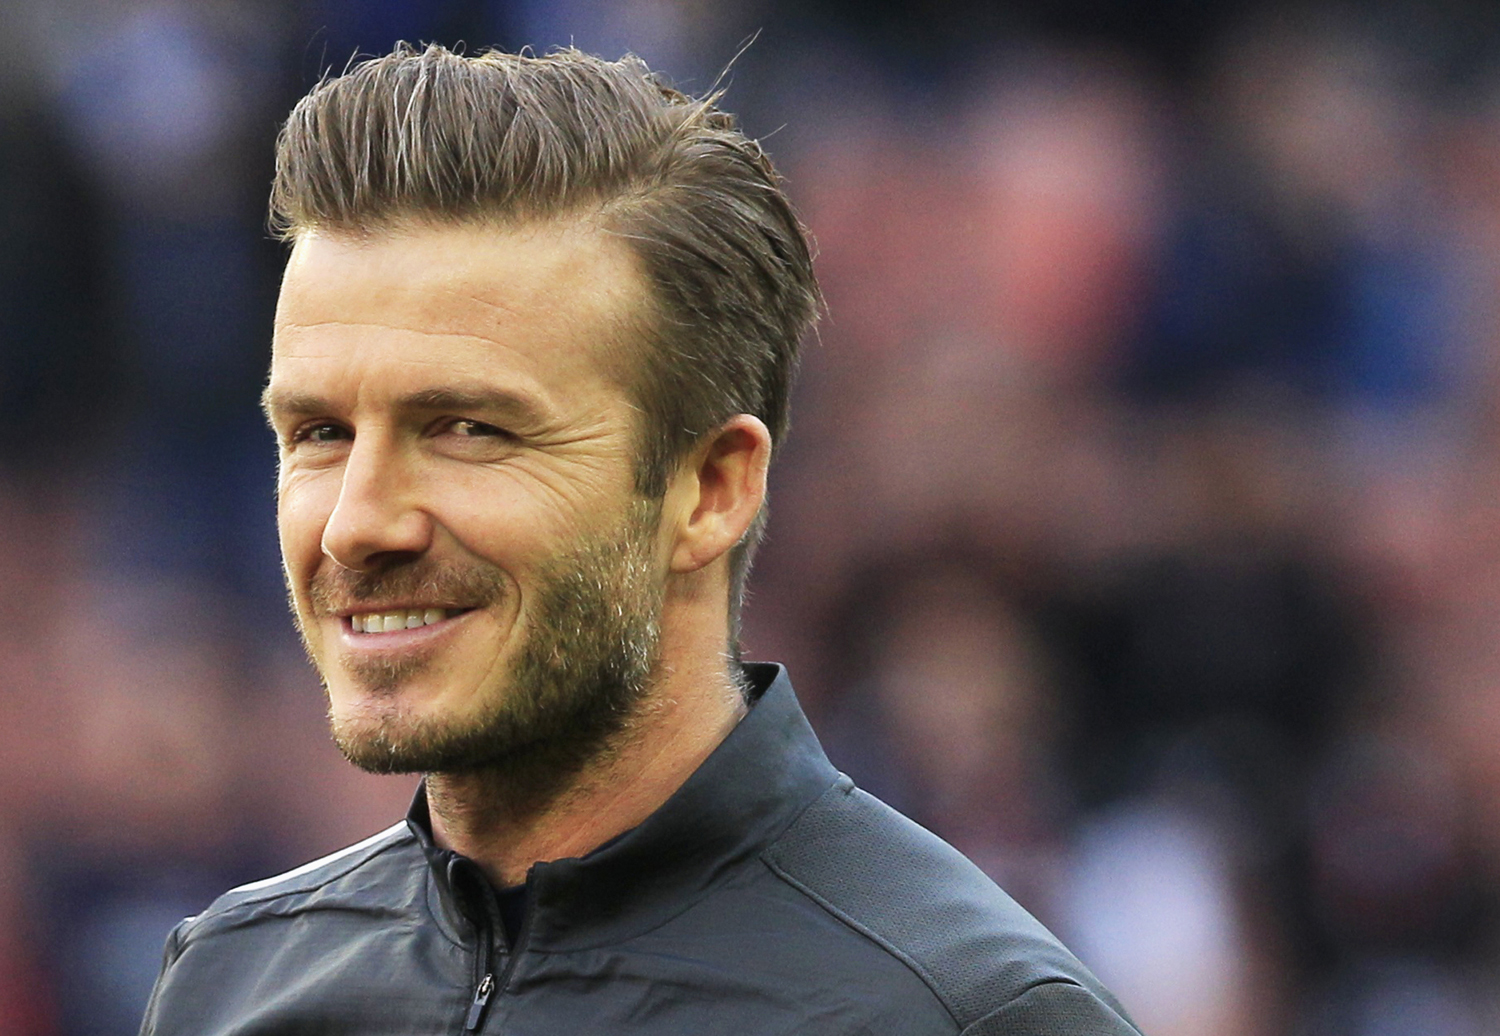 David Beckham Images Hd Full Hd Pictures